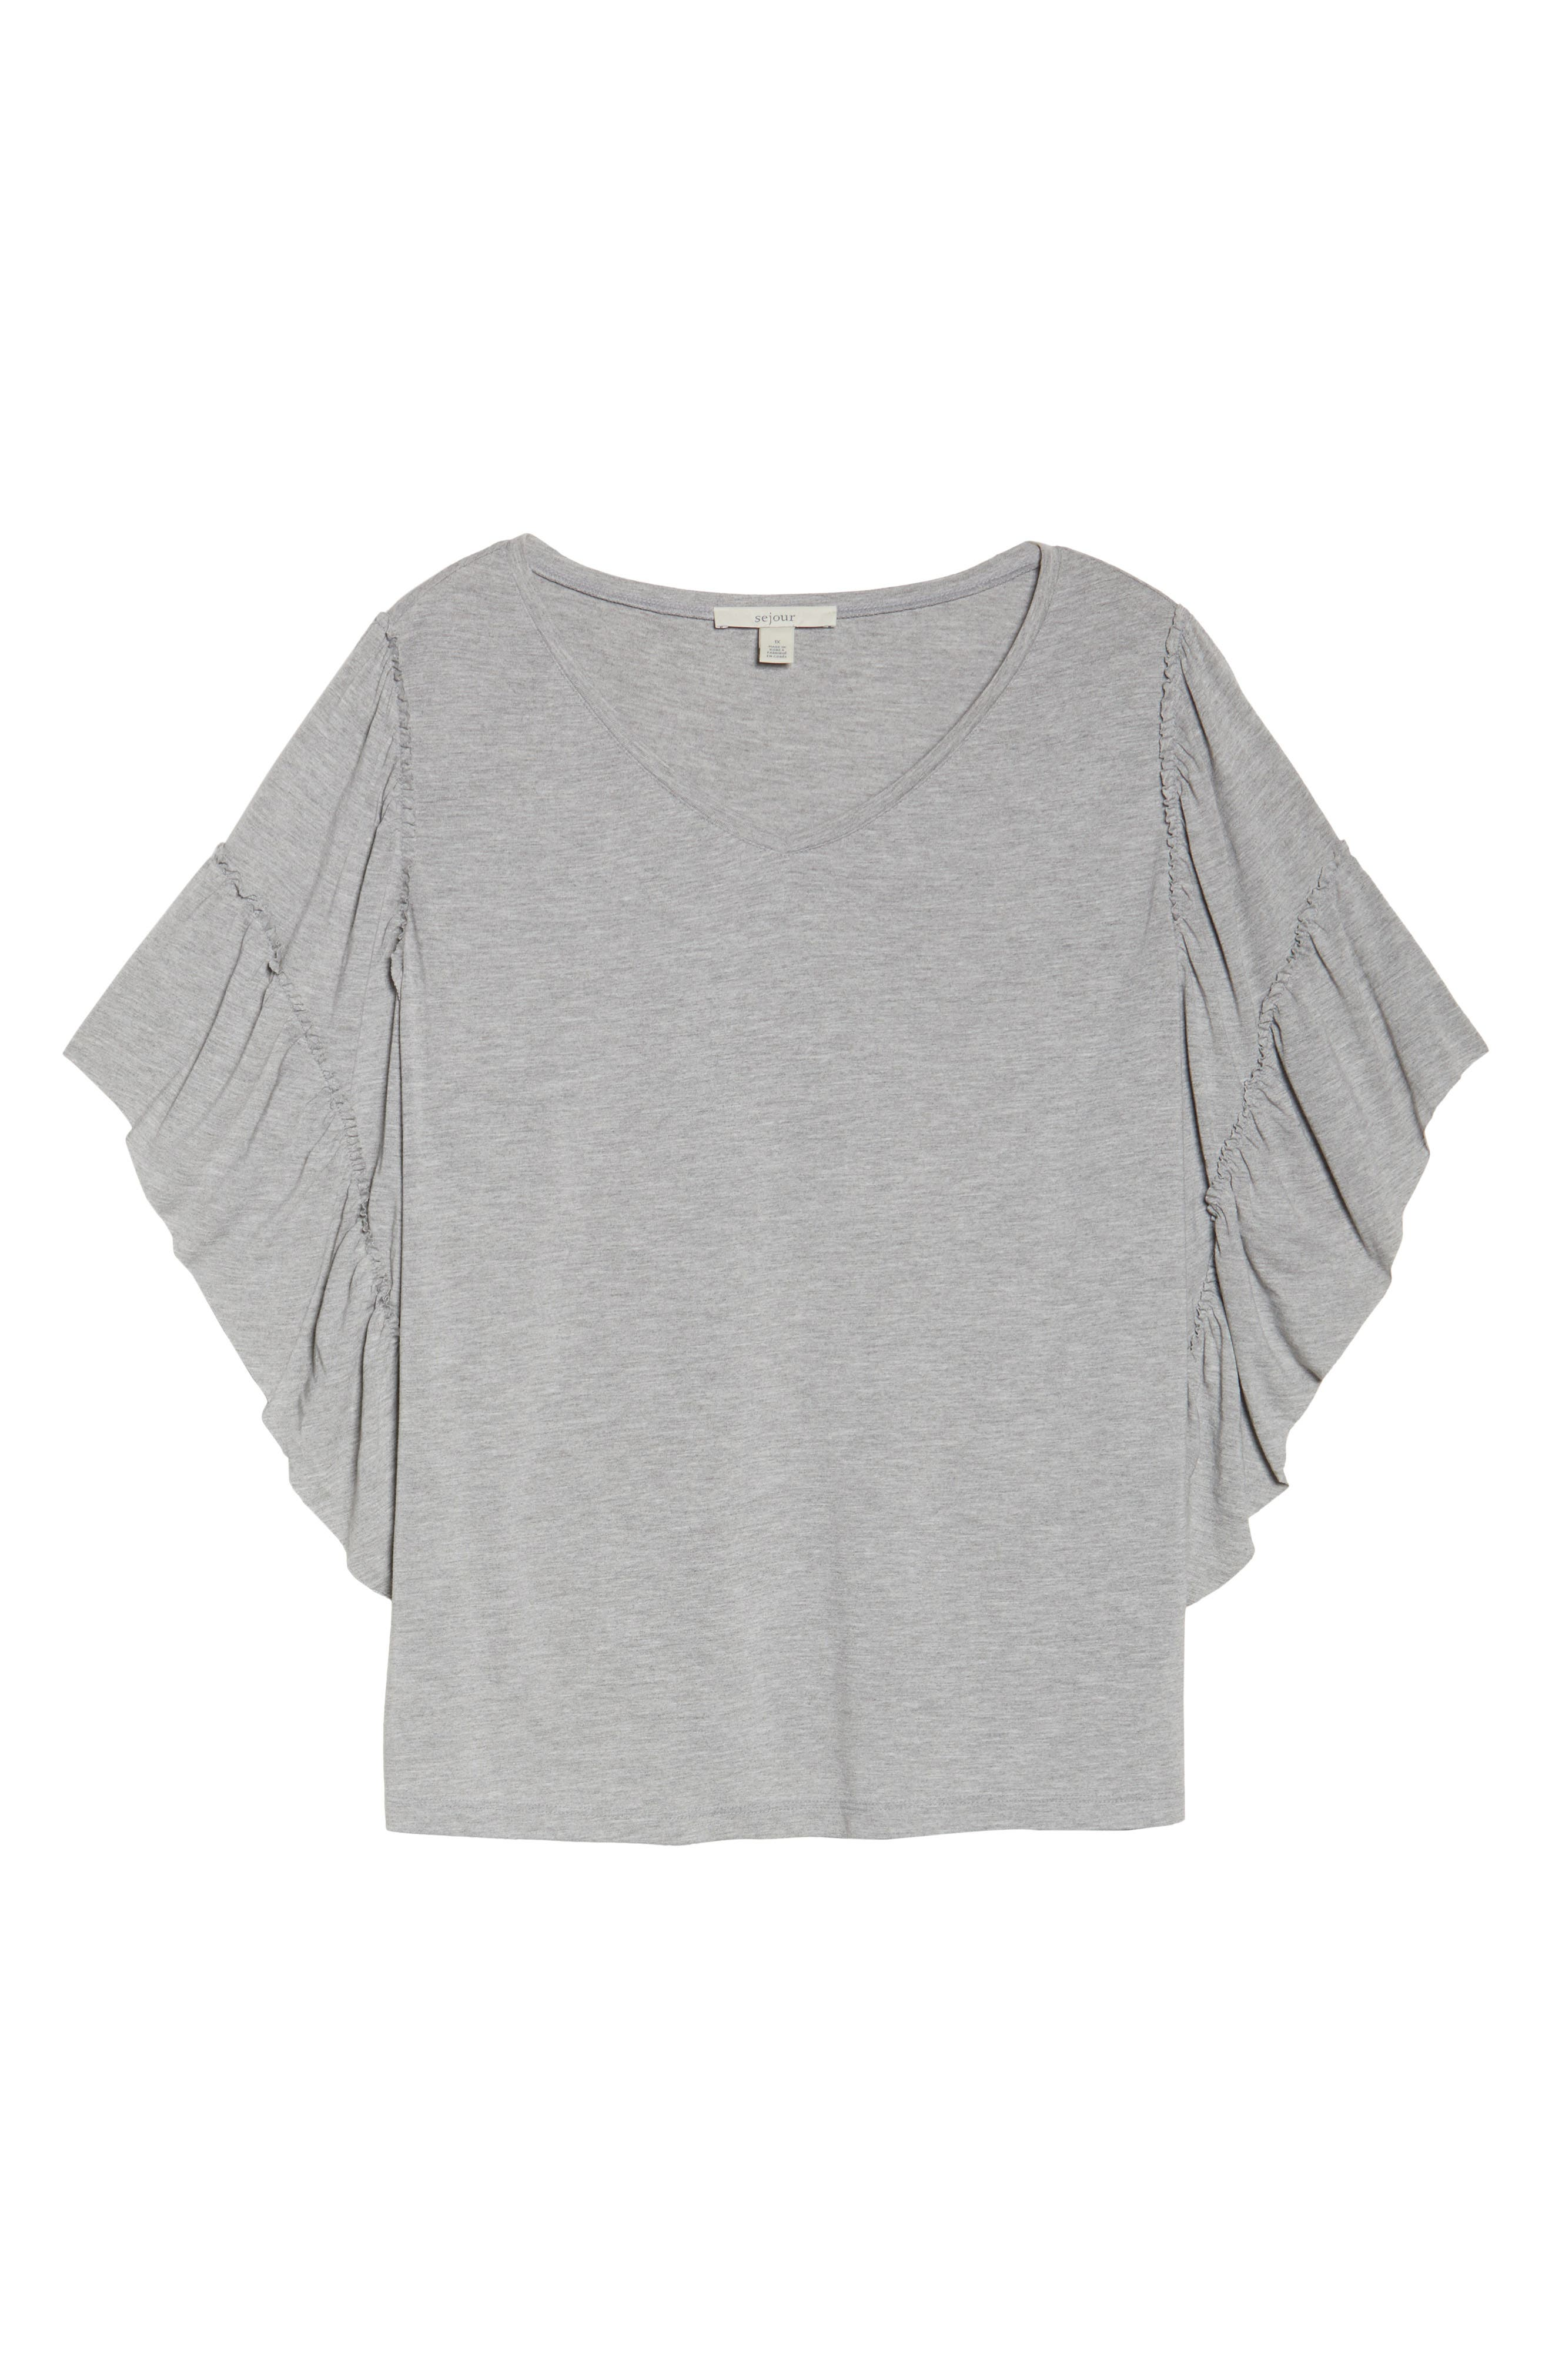 Frill Sleeve Tee,                             Alternate thumbnail 7, color,                             030